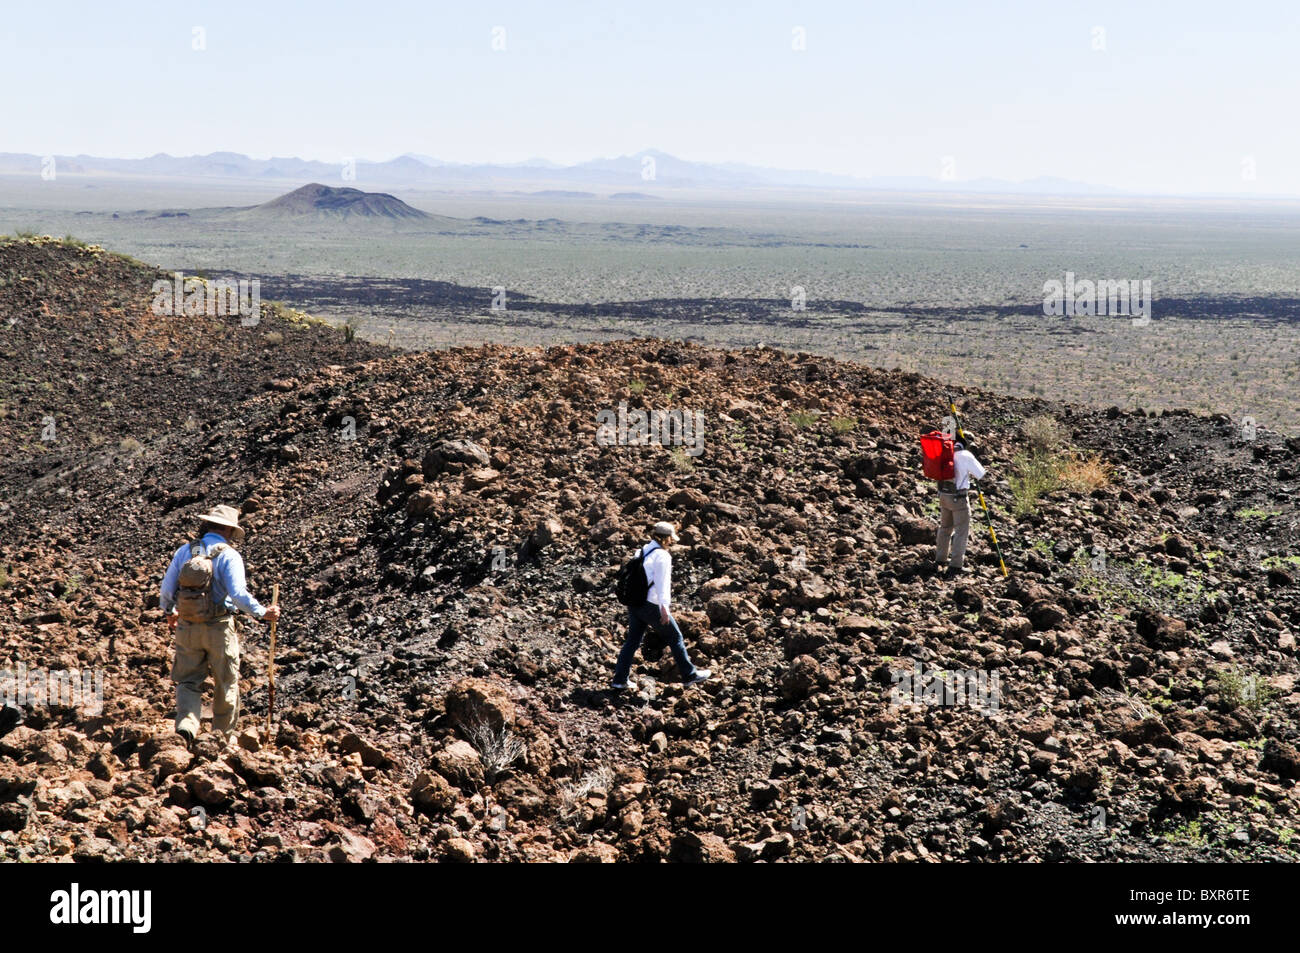 Hikers traversing rugged lava field on side of El Tecolote Cinder Cone, El Pinacate Biosphere Reserve, Sonora, Mexico - Stock Image